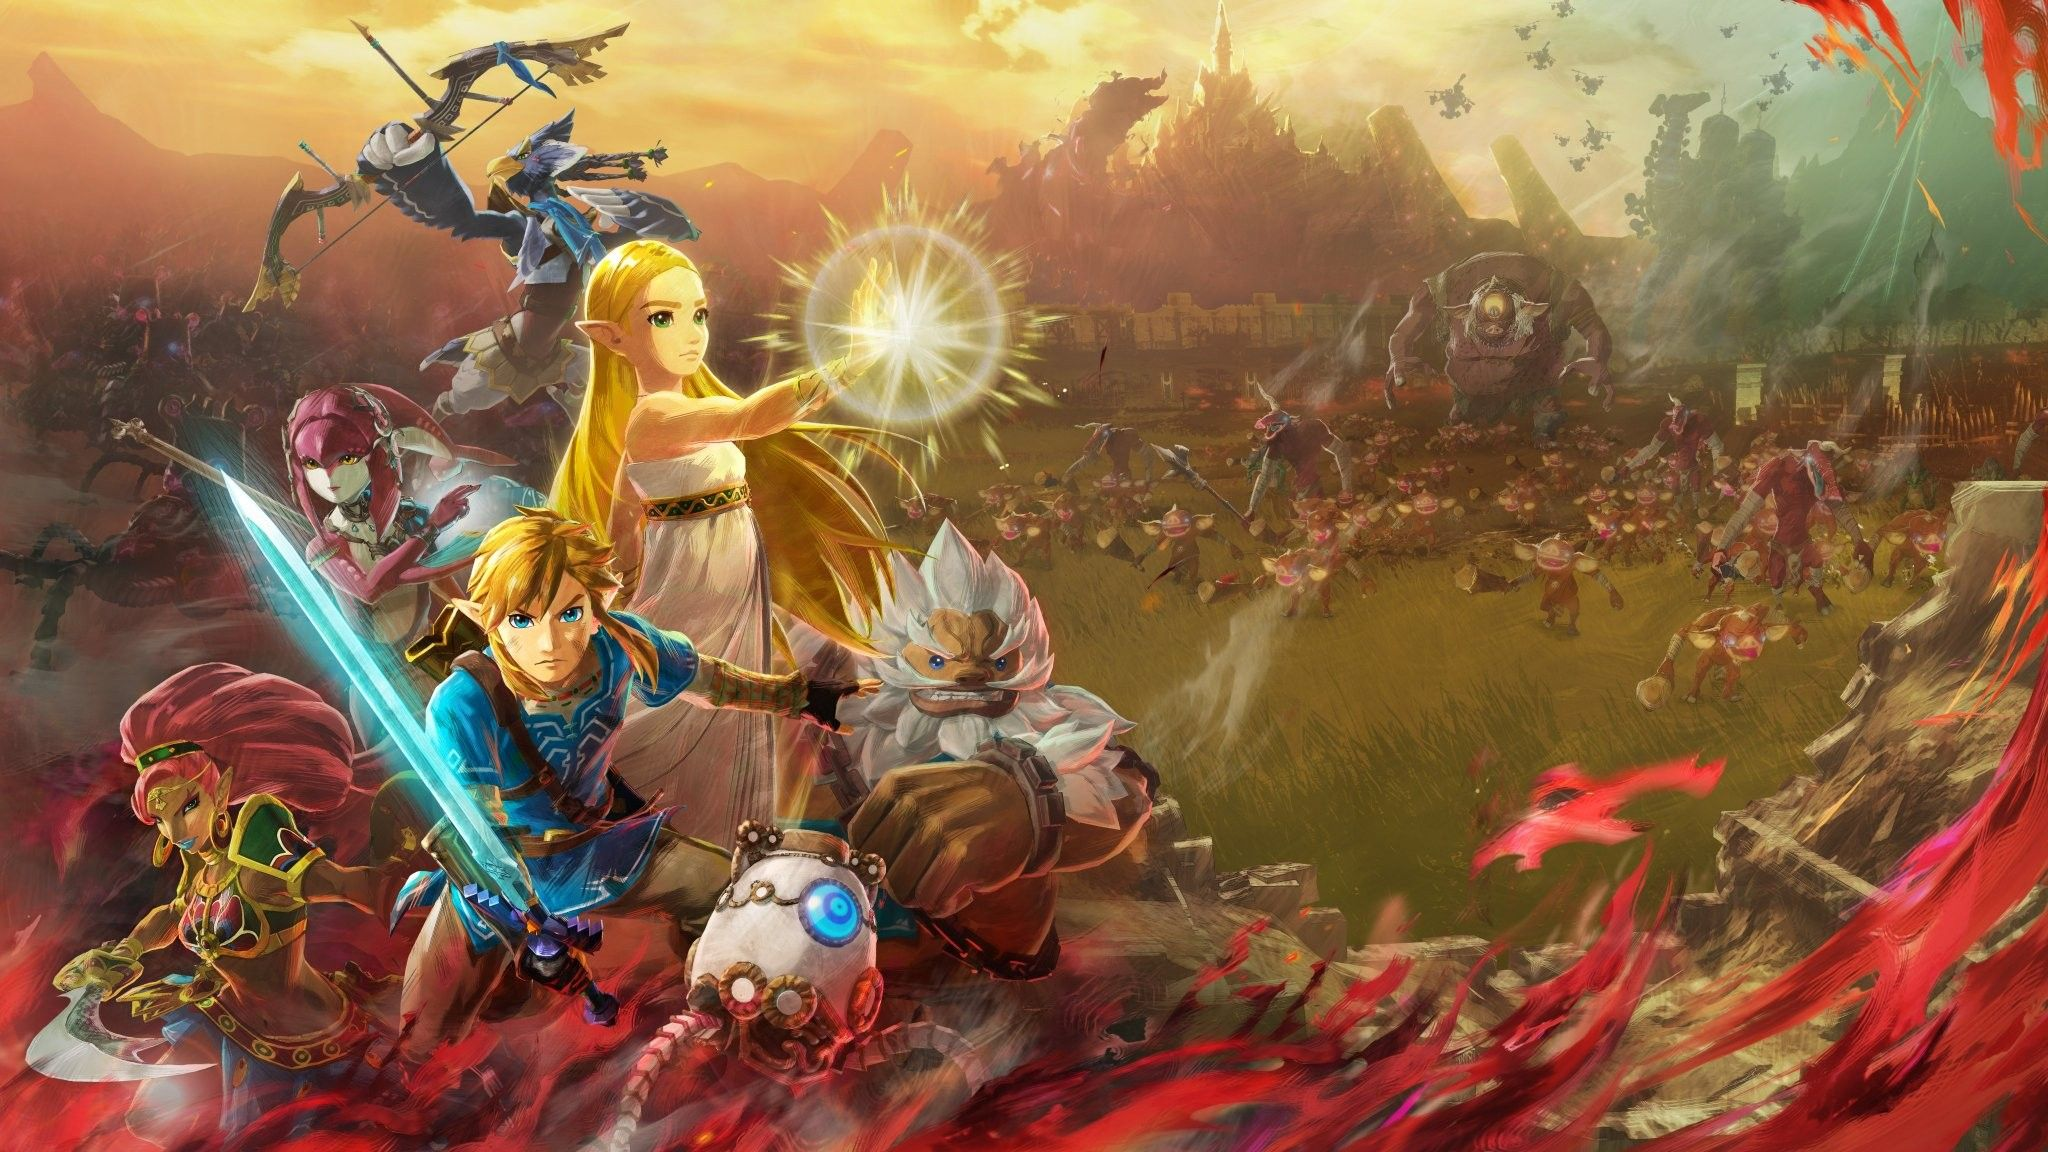 Pin By Yusran Daffa On The Legend Of Zelda Zelda Hyrule Warriors Hyrule Warriors Zelda Art